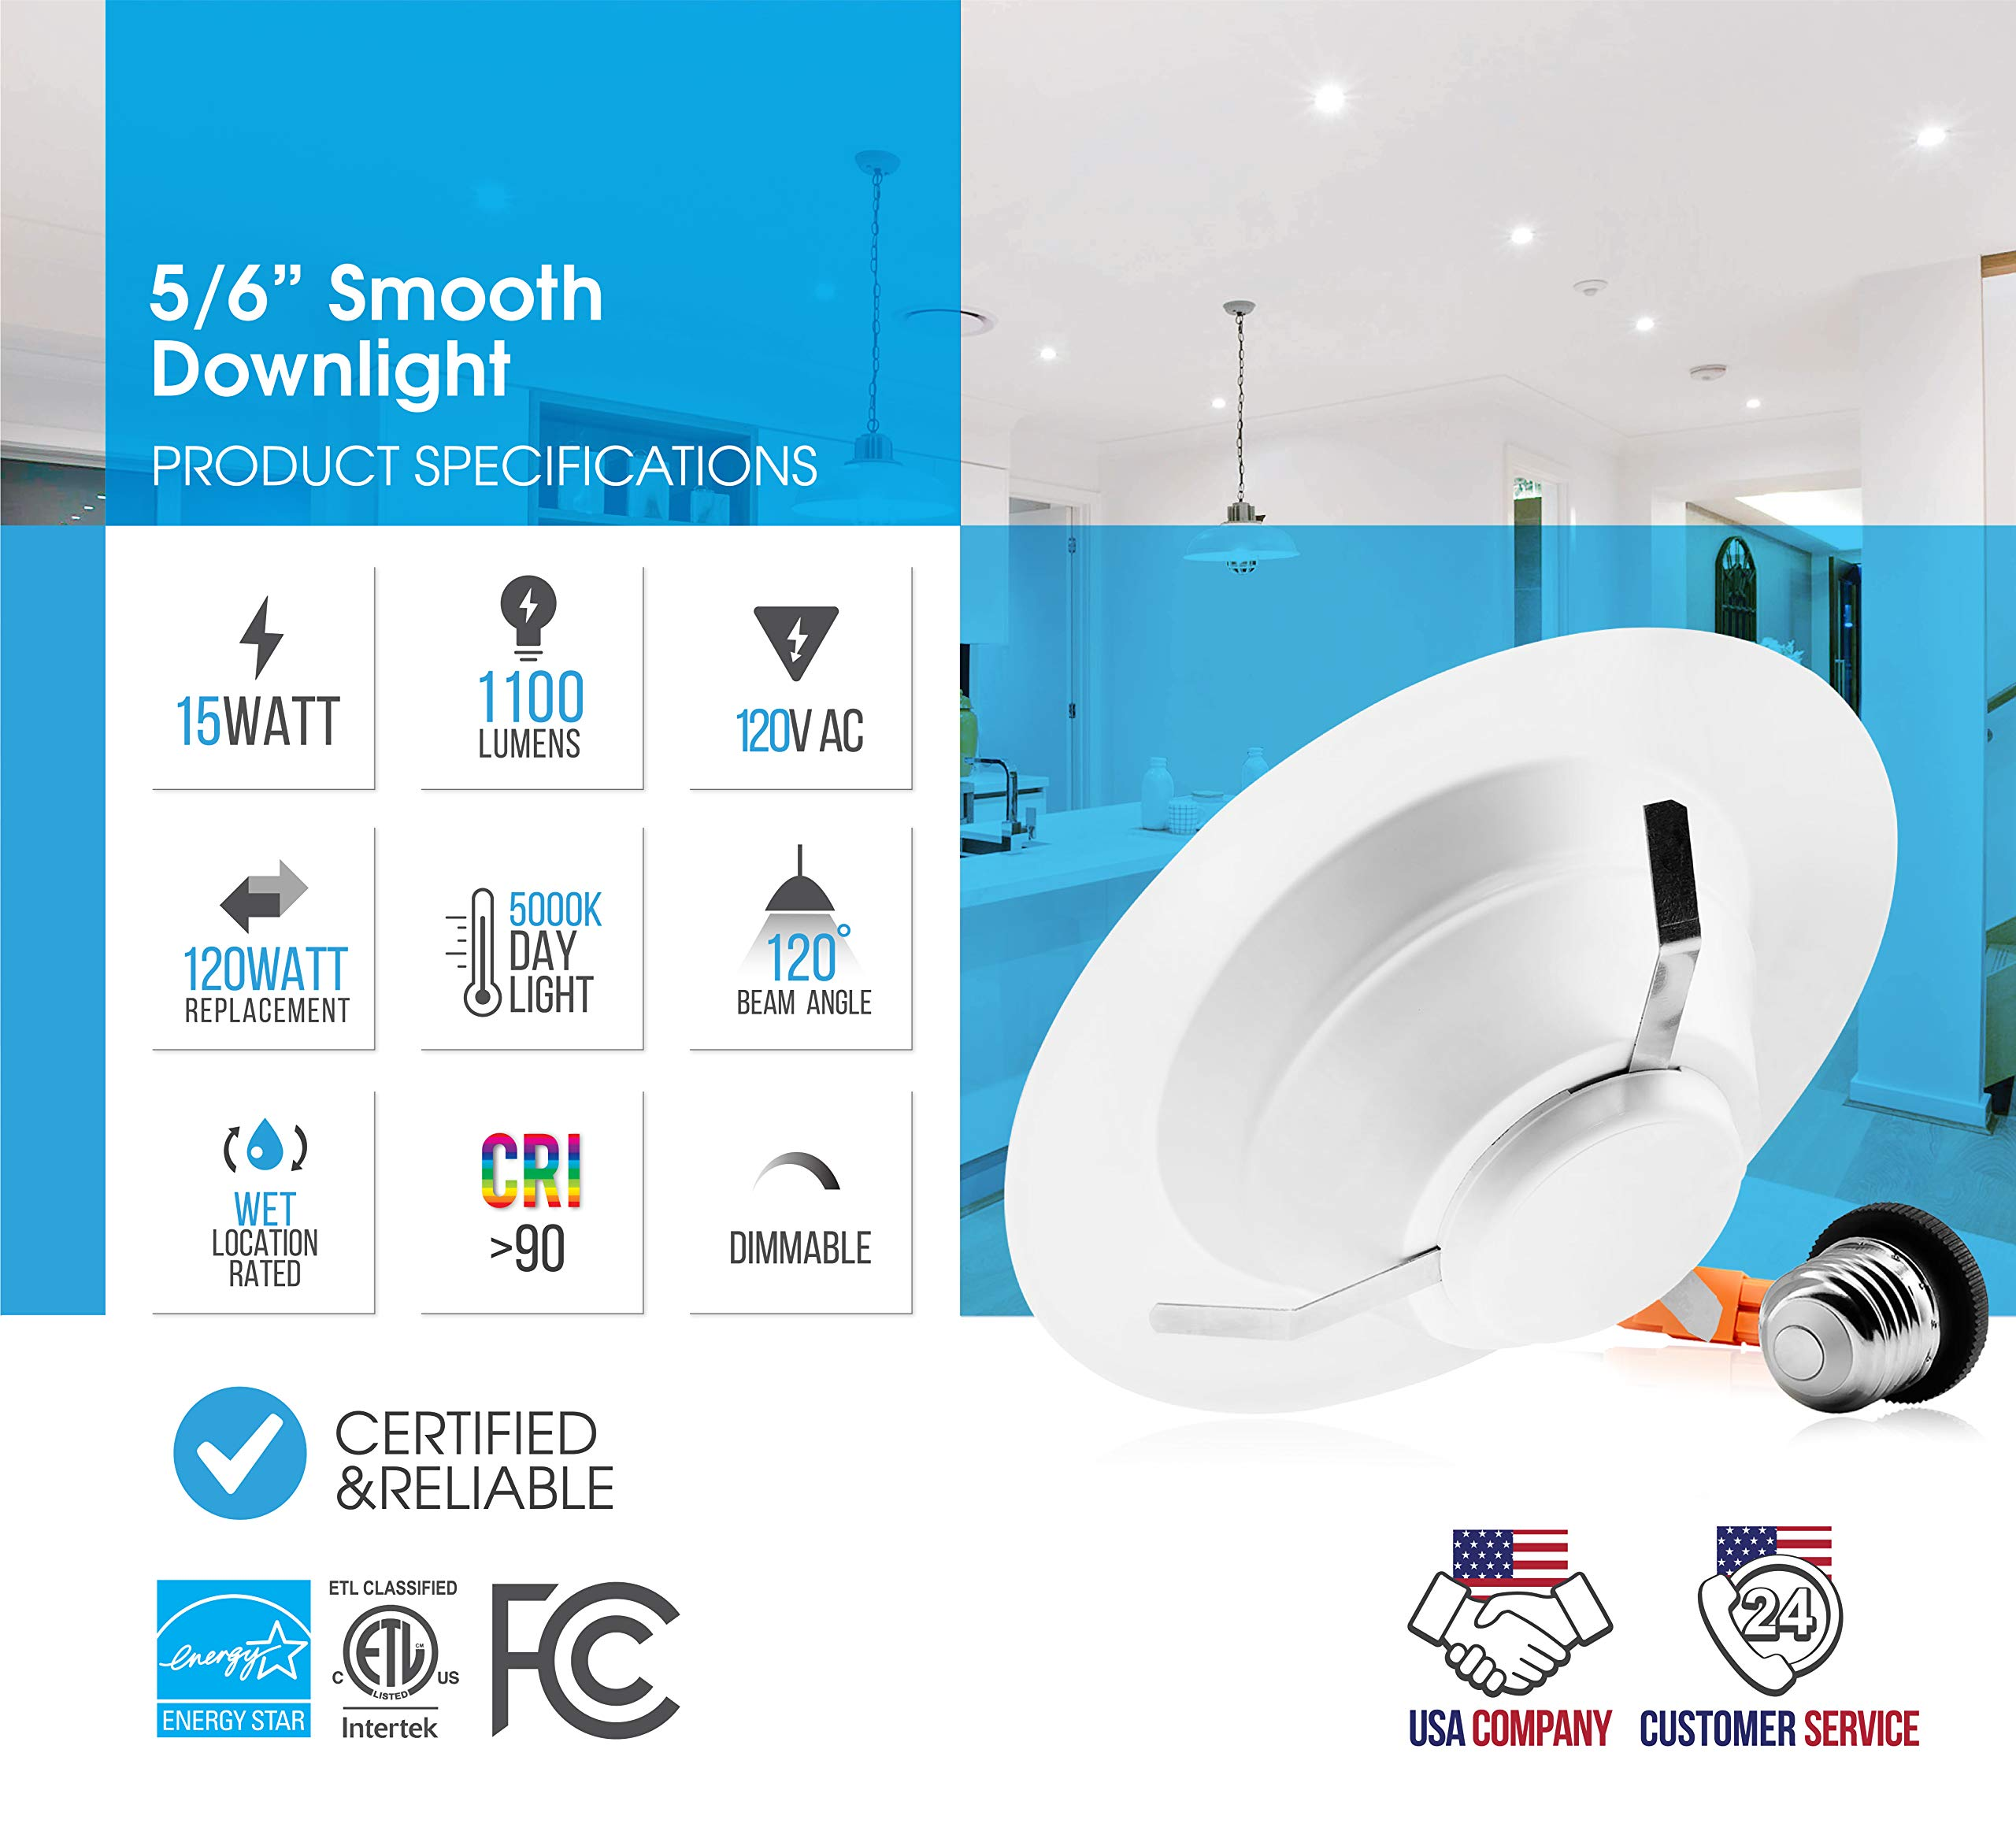 Parmida (12 Pack) 5/6 inch Dimmable LED Recessed Retrofit Downlight, 15W (120W Replacement), EASY INSTALLATION, 1100lm, 1100Lm, ENERGY STAR & ETL, LED Ceiling Down Light, LED Trim, 5000K (Day Light) by Parmida LED Technologies (Image #3)